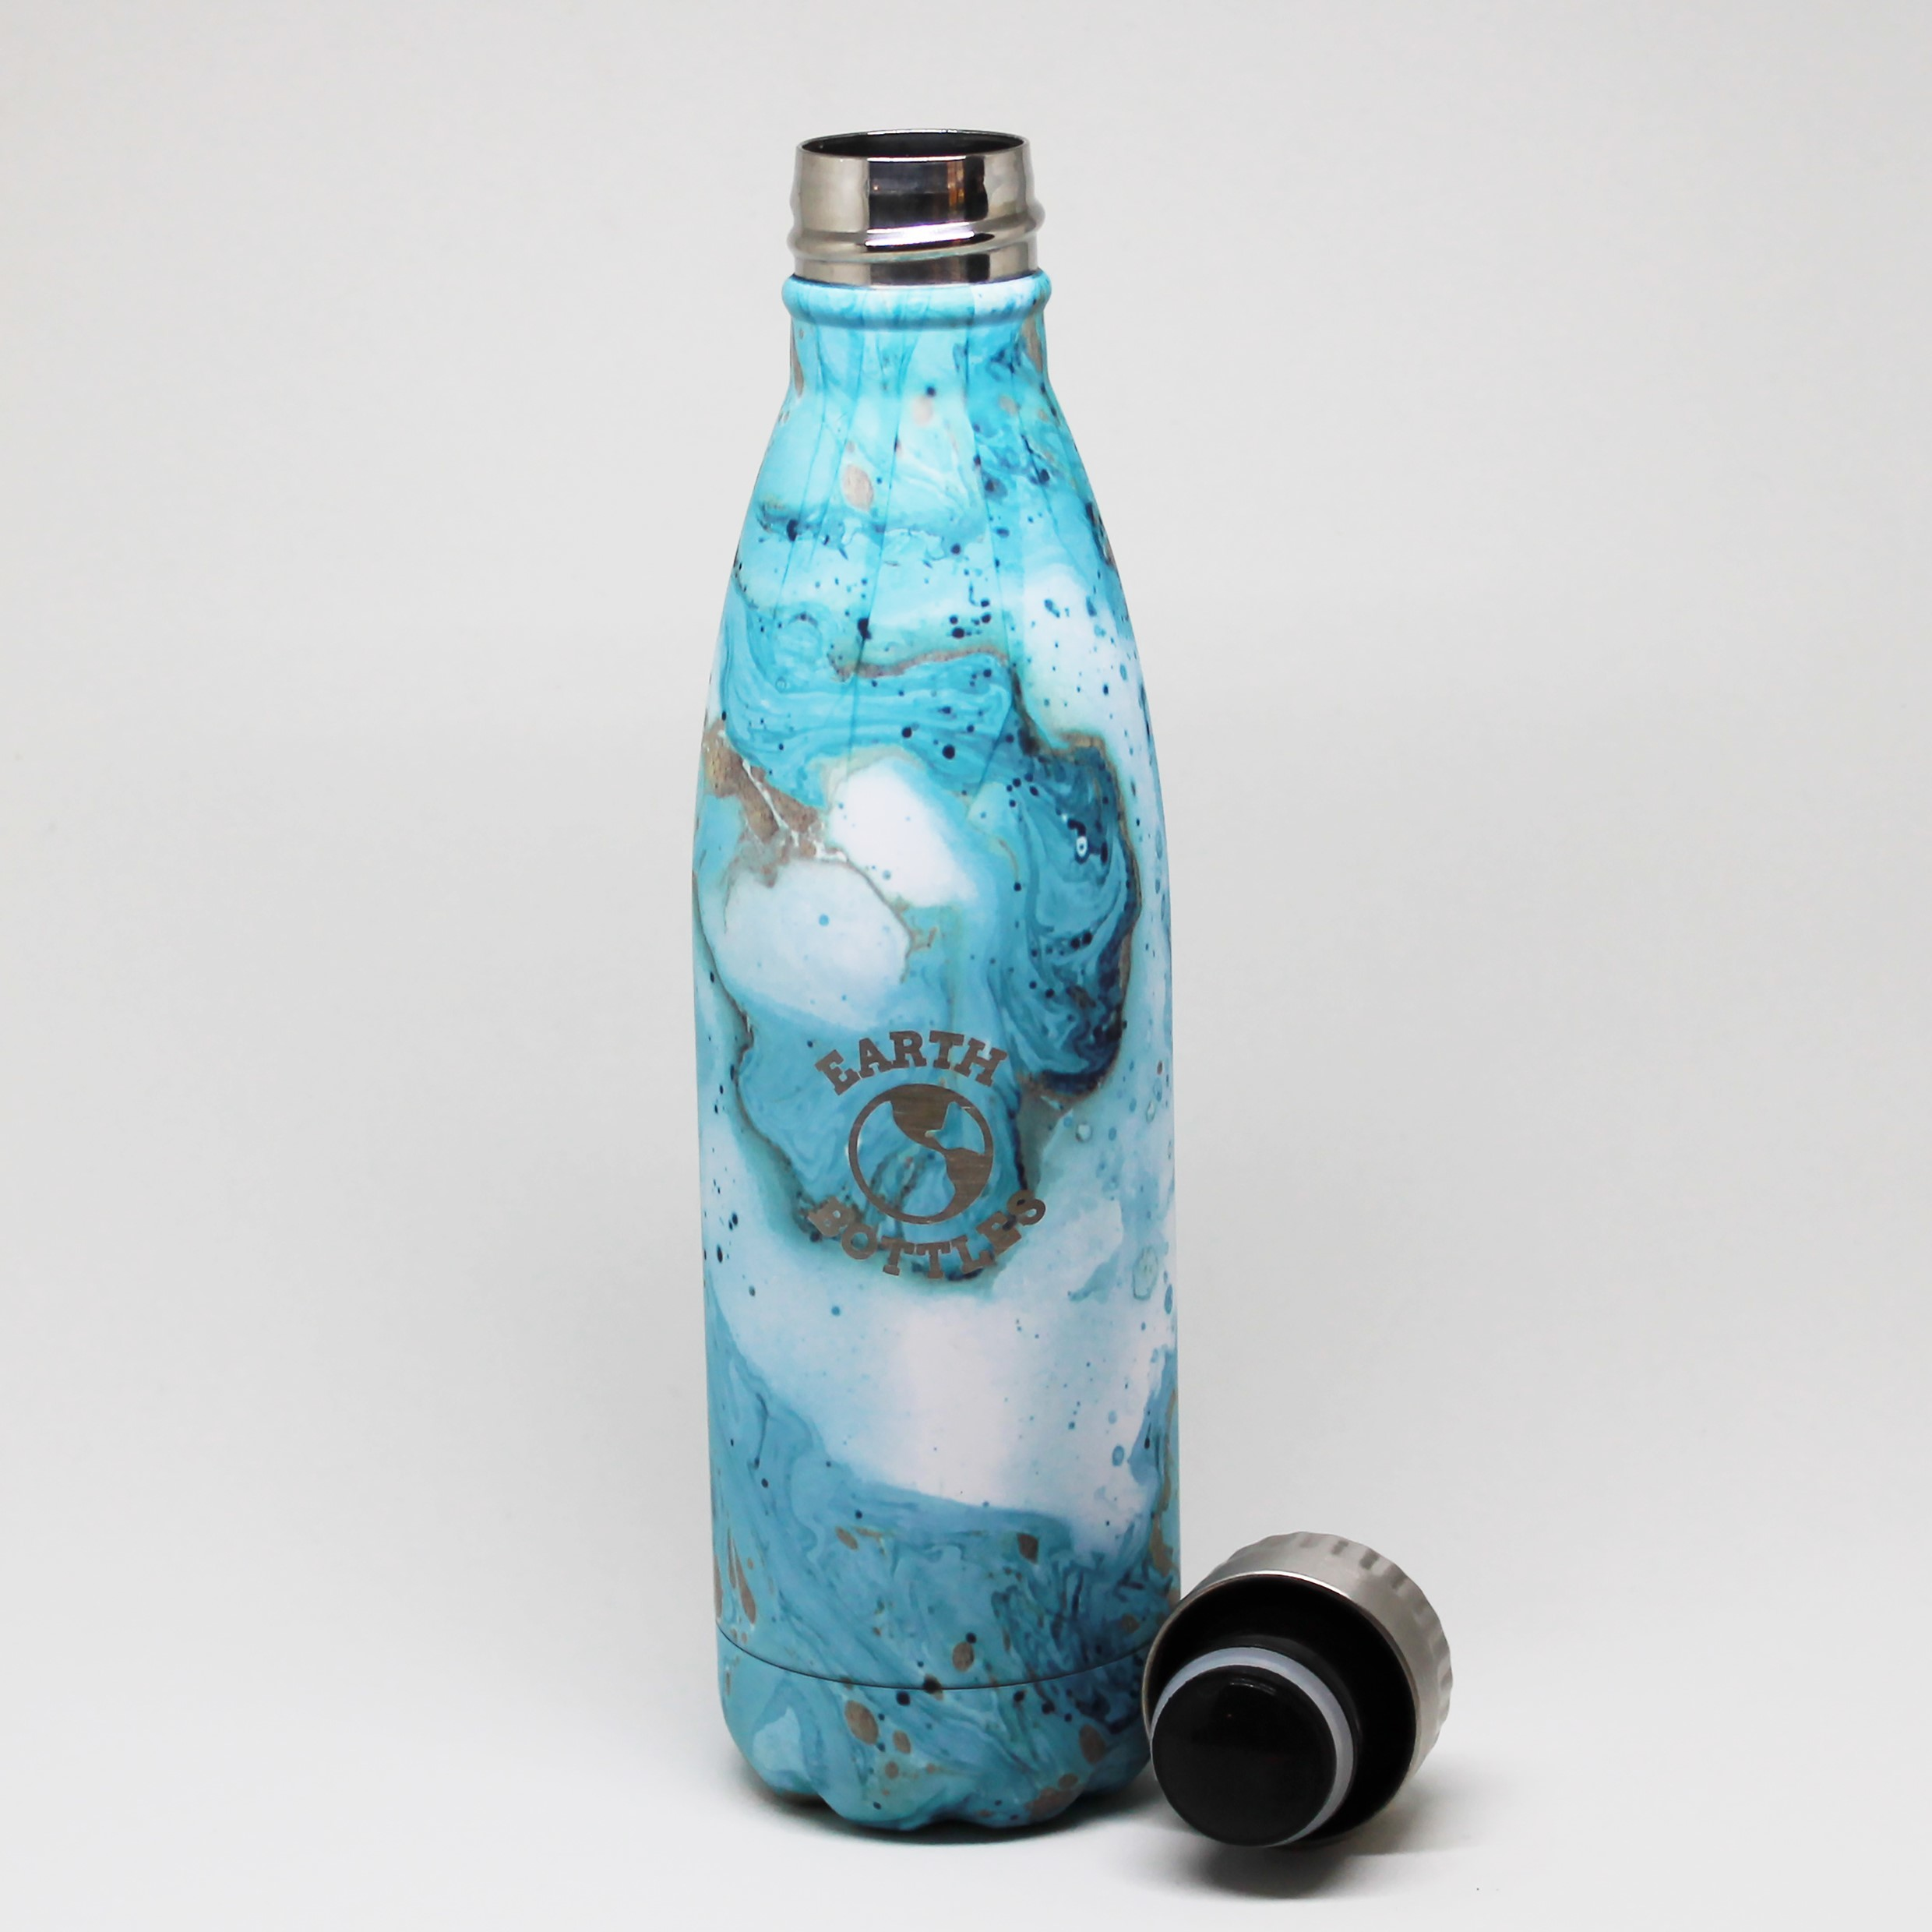 NEW Faux wood double insulated stainless steel water bottle by Earth Bottles Aus